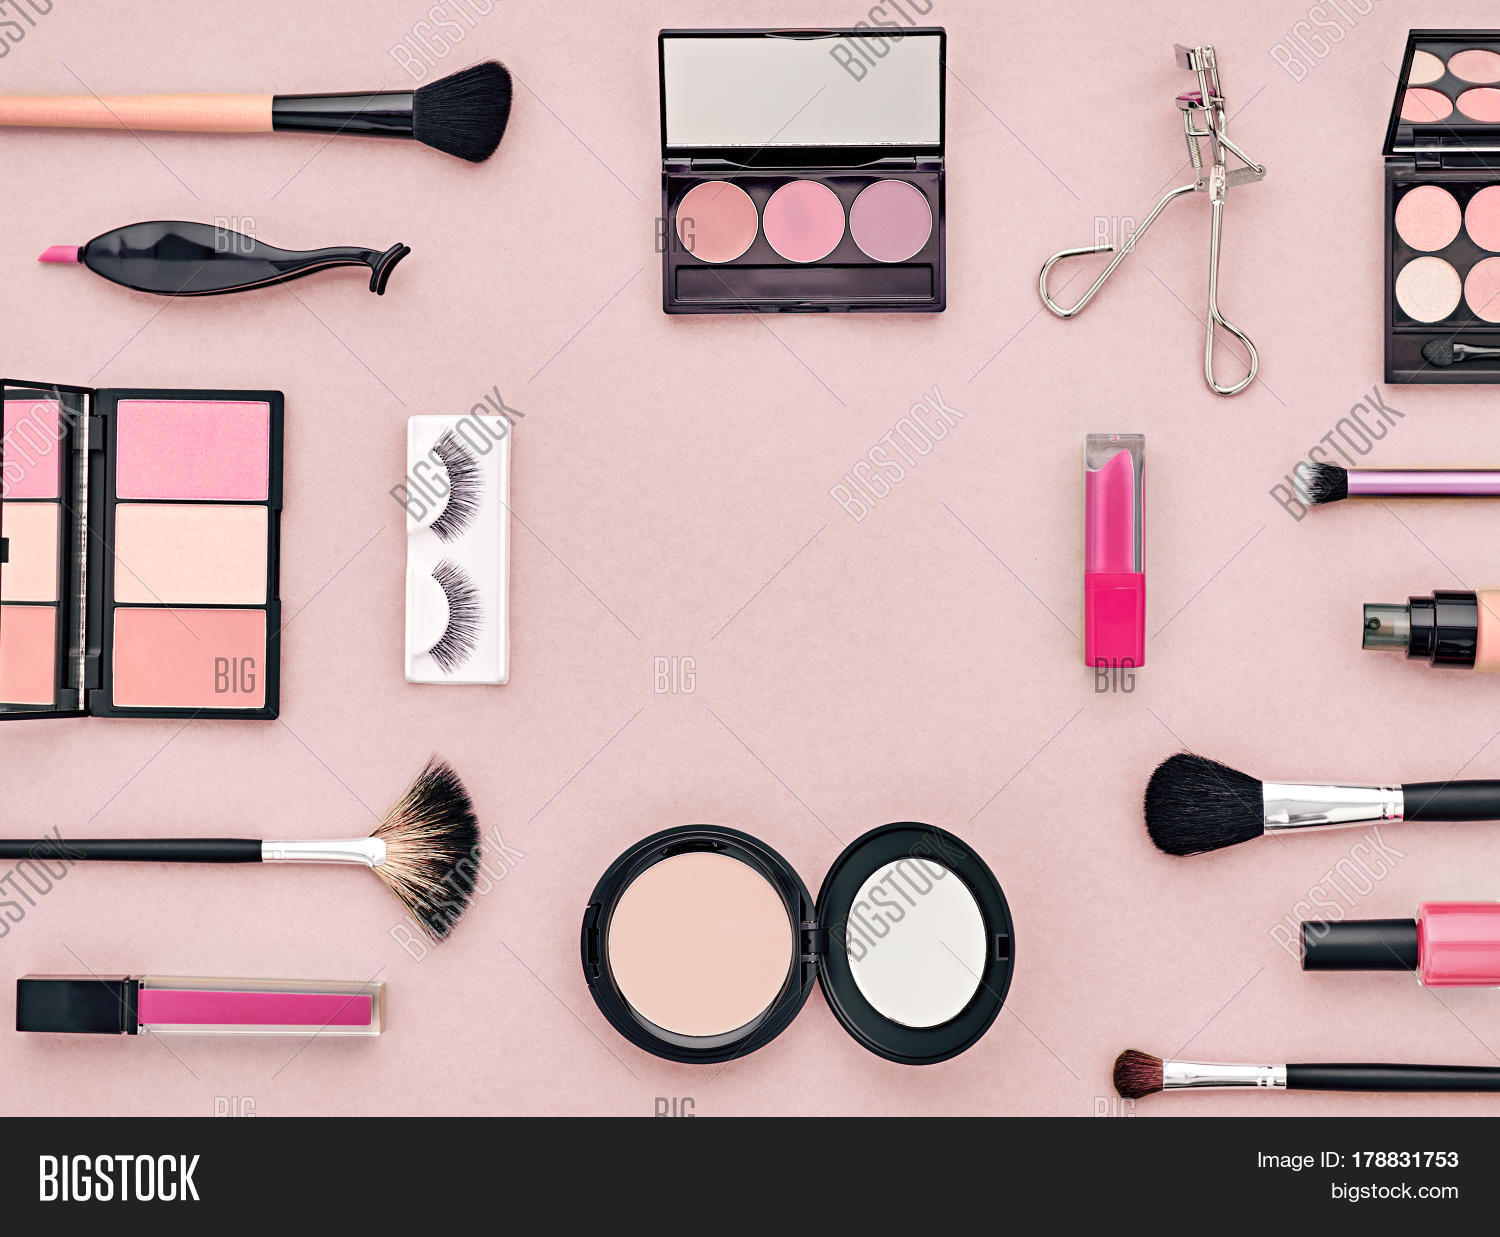 Fashion Cosmetic Image   Photo  Free Trial    Bigstock Fashion Cosmetic Makeup Set  Woman Beauty Accessories Set  Essentials  Makeup  background  Fashion